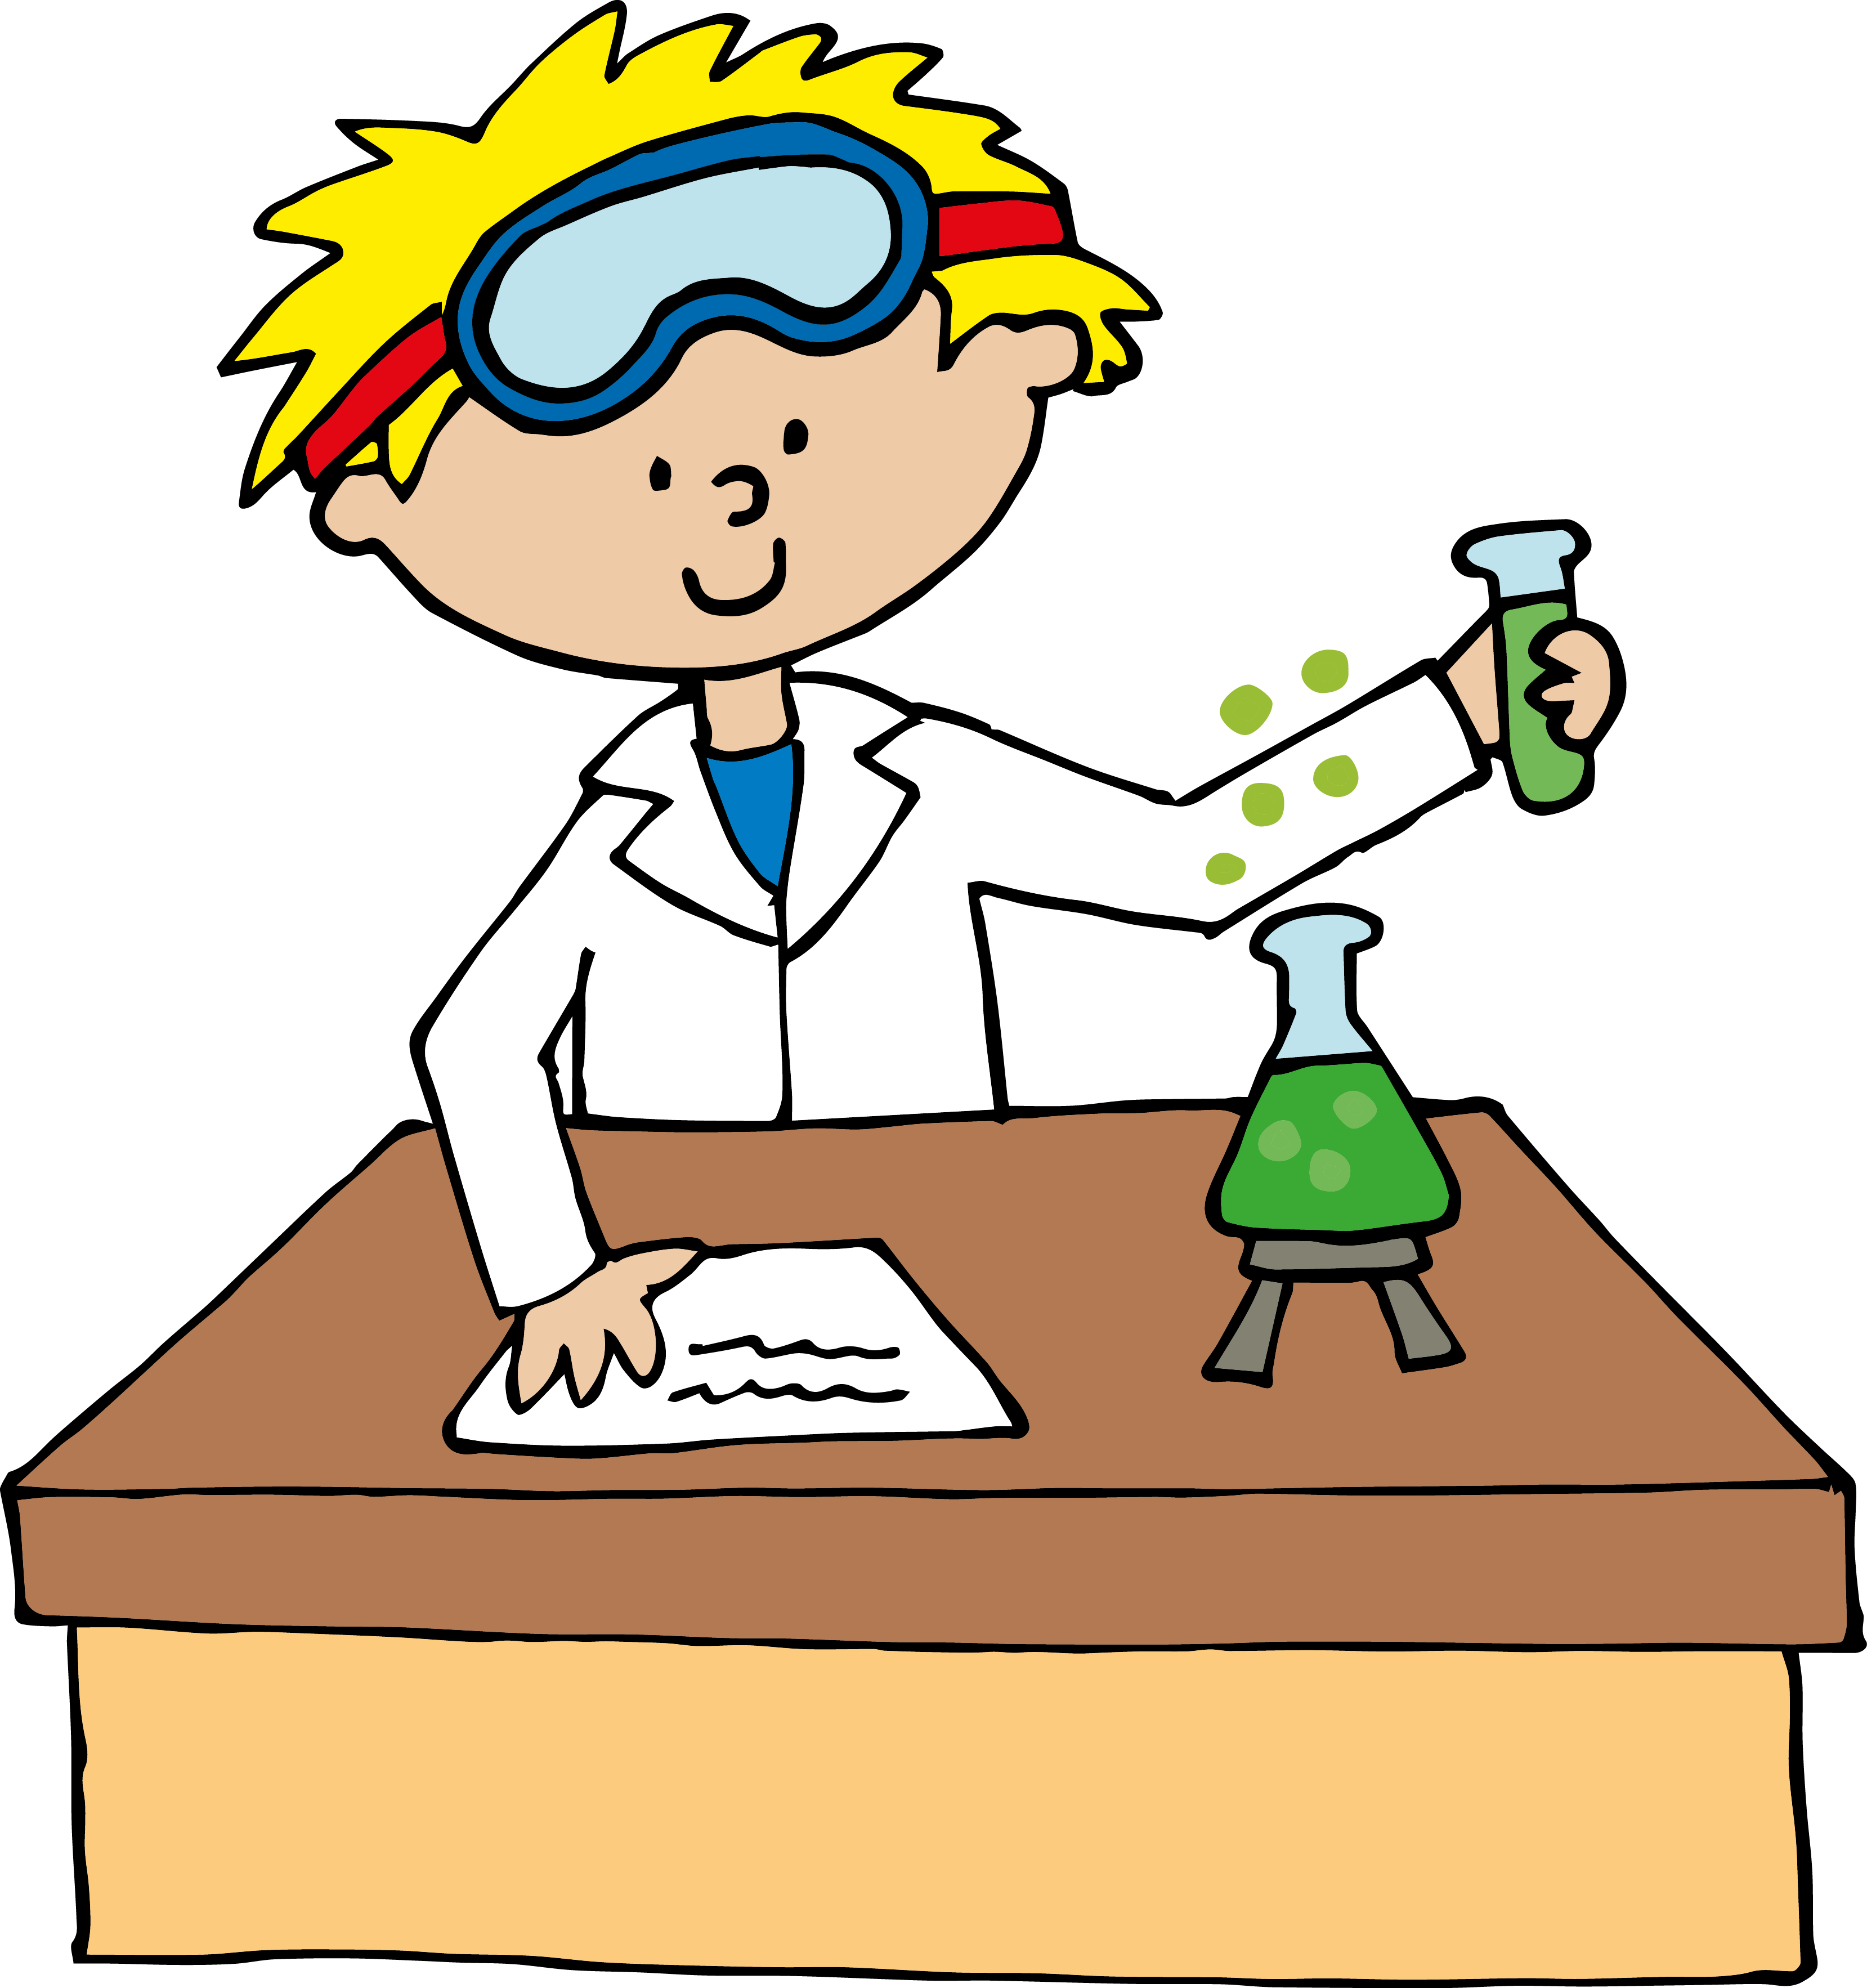 safe clipart lab safety